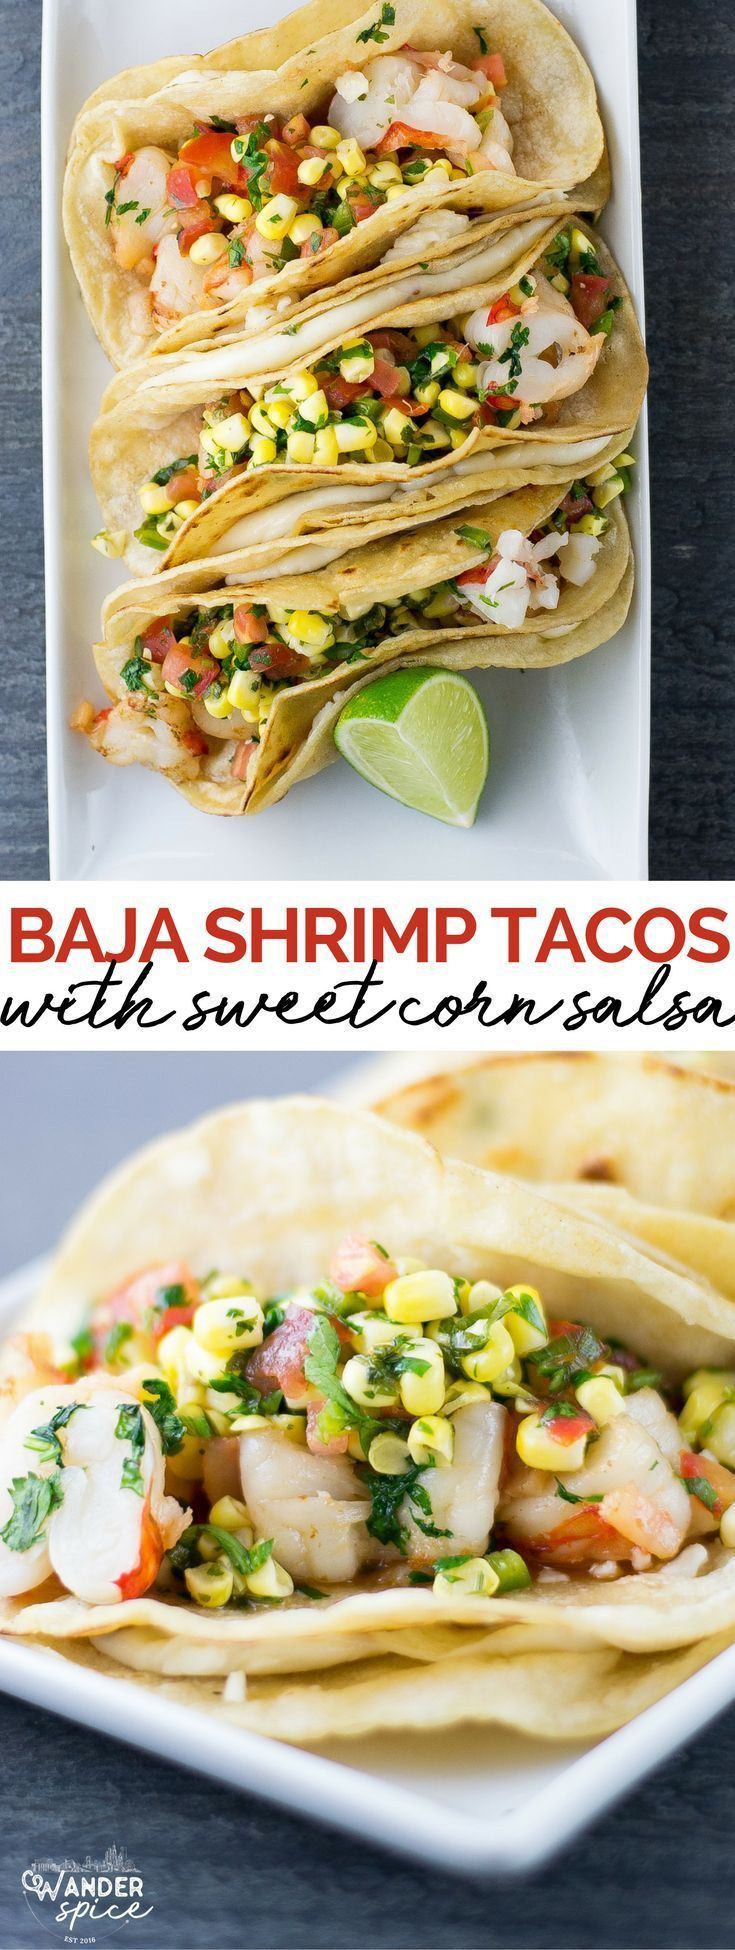 Shrimp Tacos with Corn Salsa | shrimp | tacos | Mexican | seafood | corn | salsa #mexicanfoods #tacos #recipes